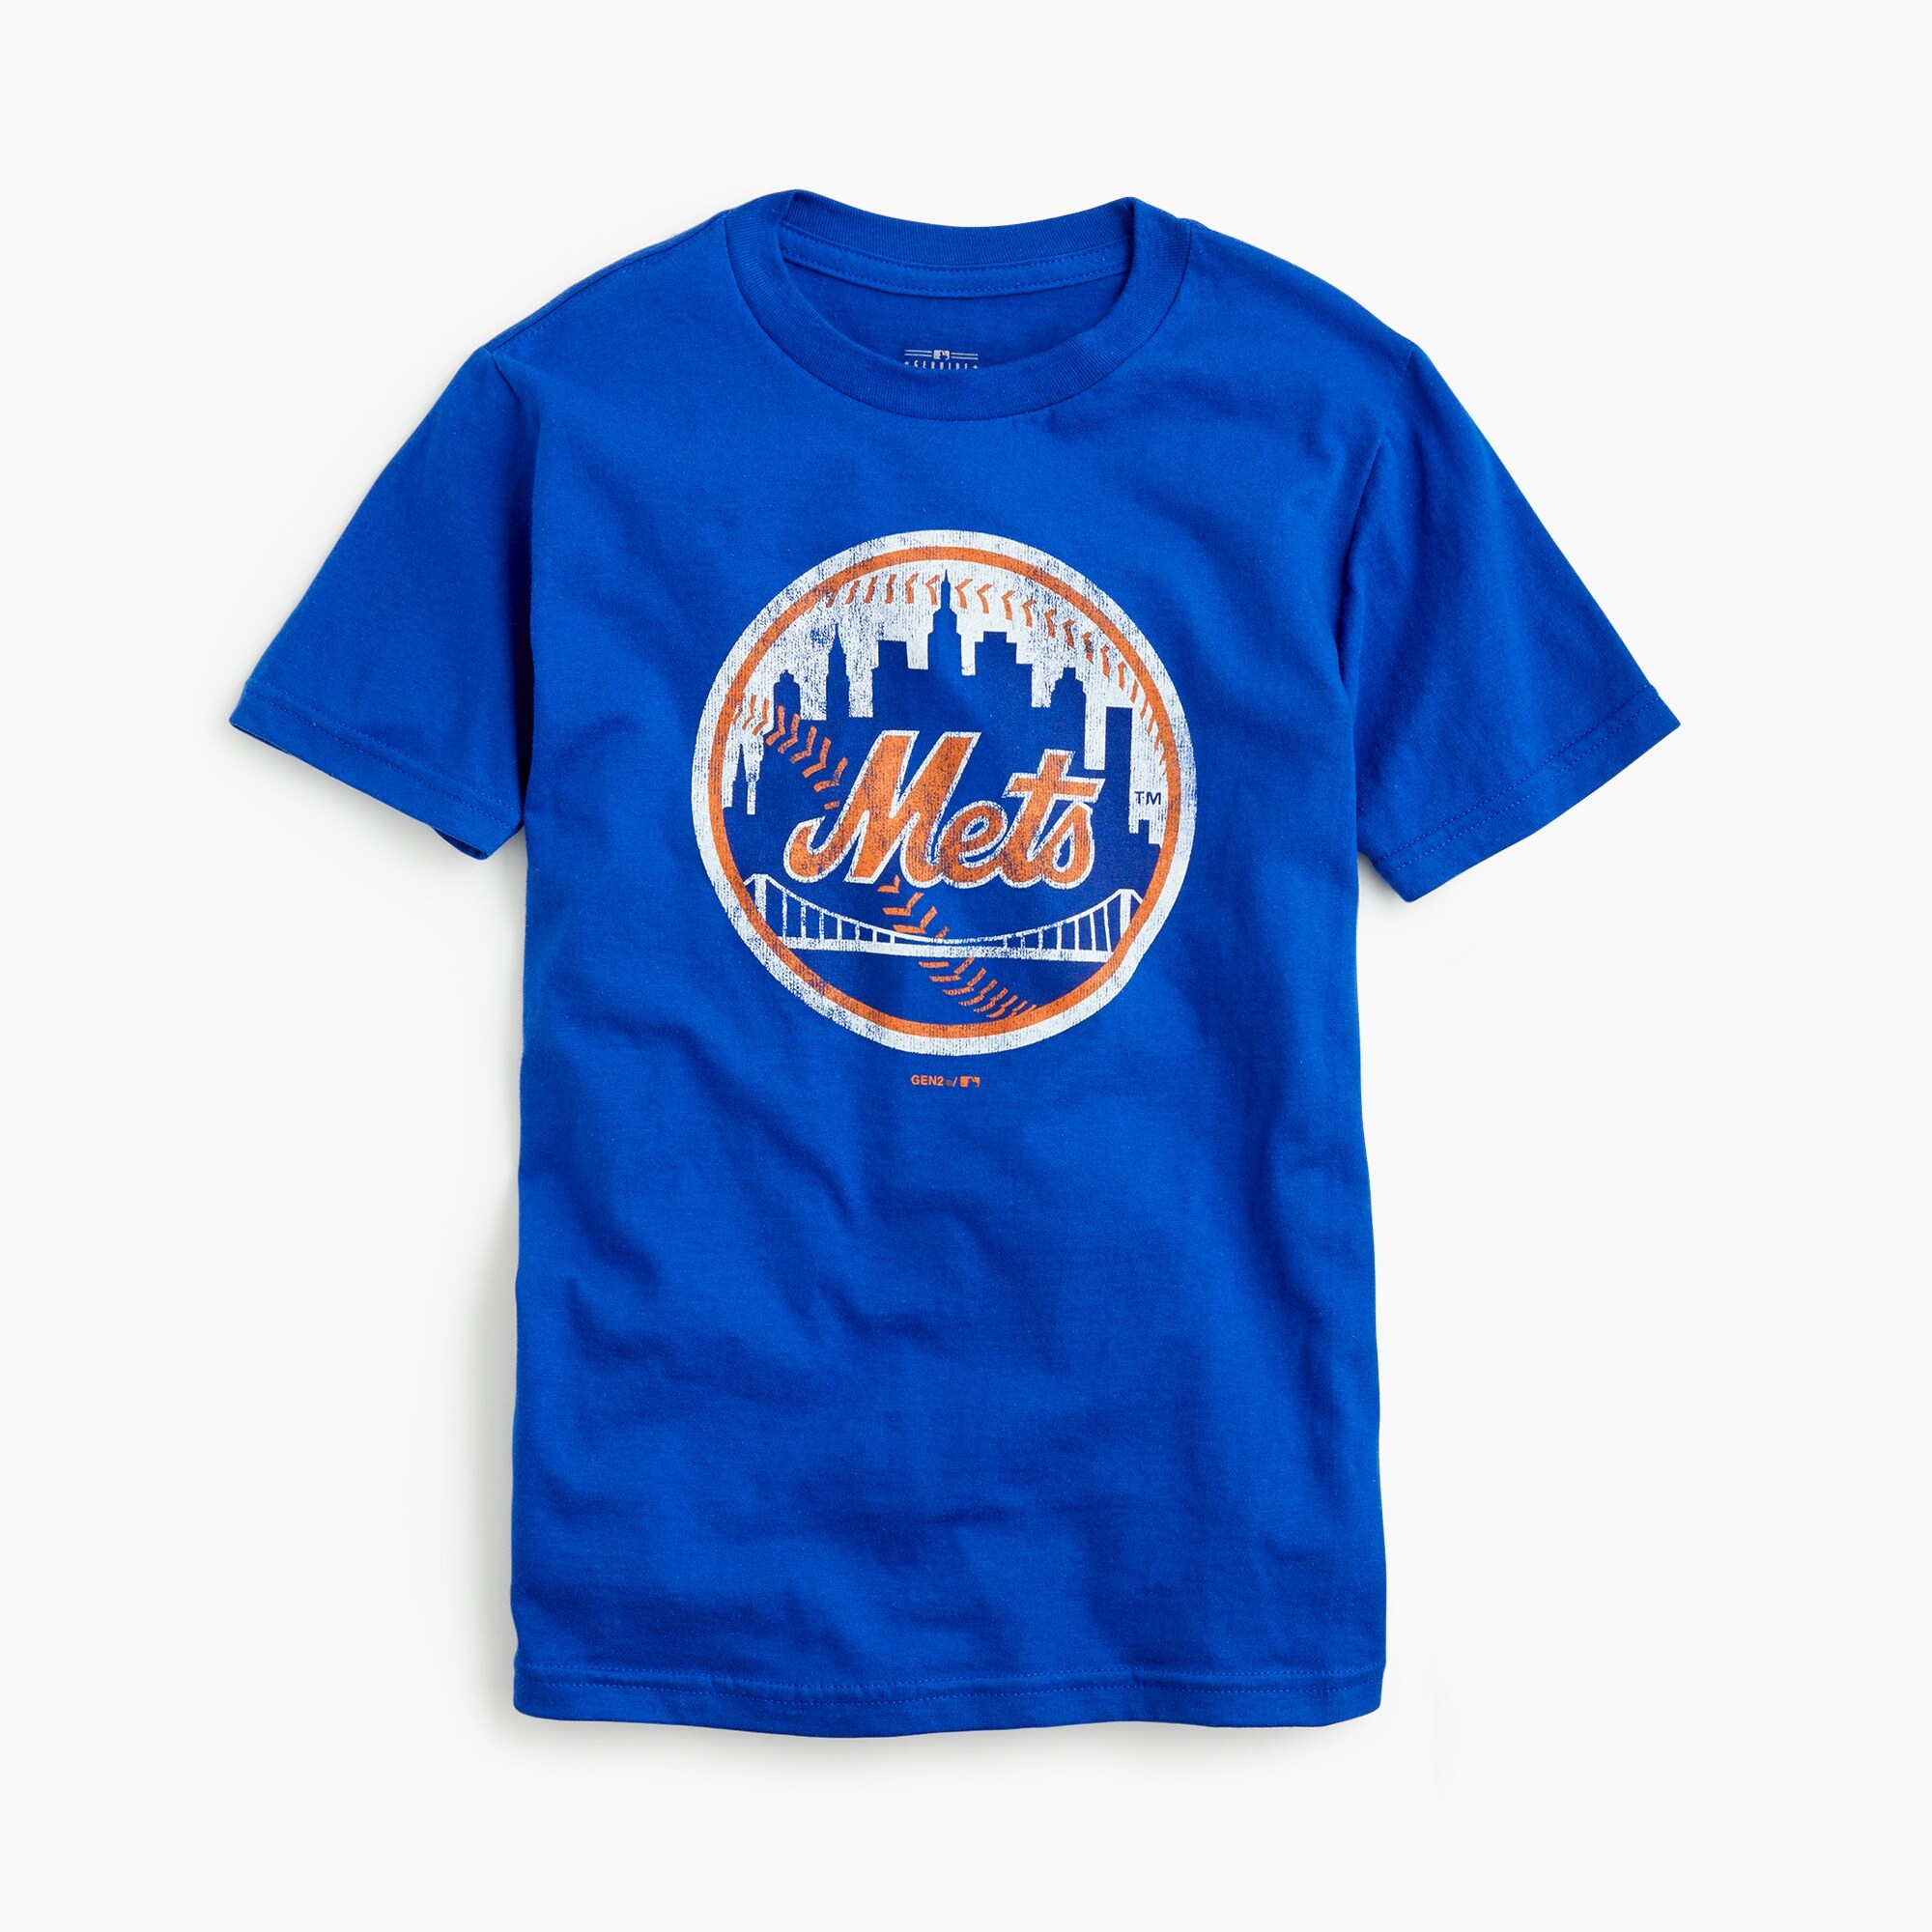 Kids' New York Mets T-shirt boy graphics shop c